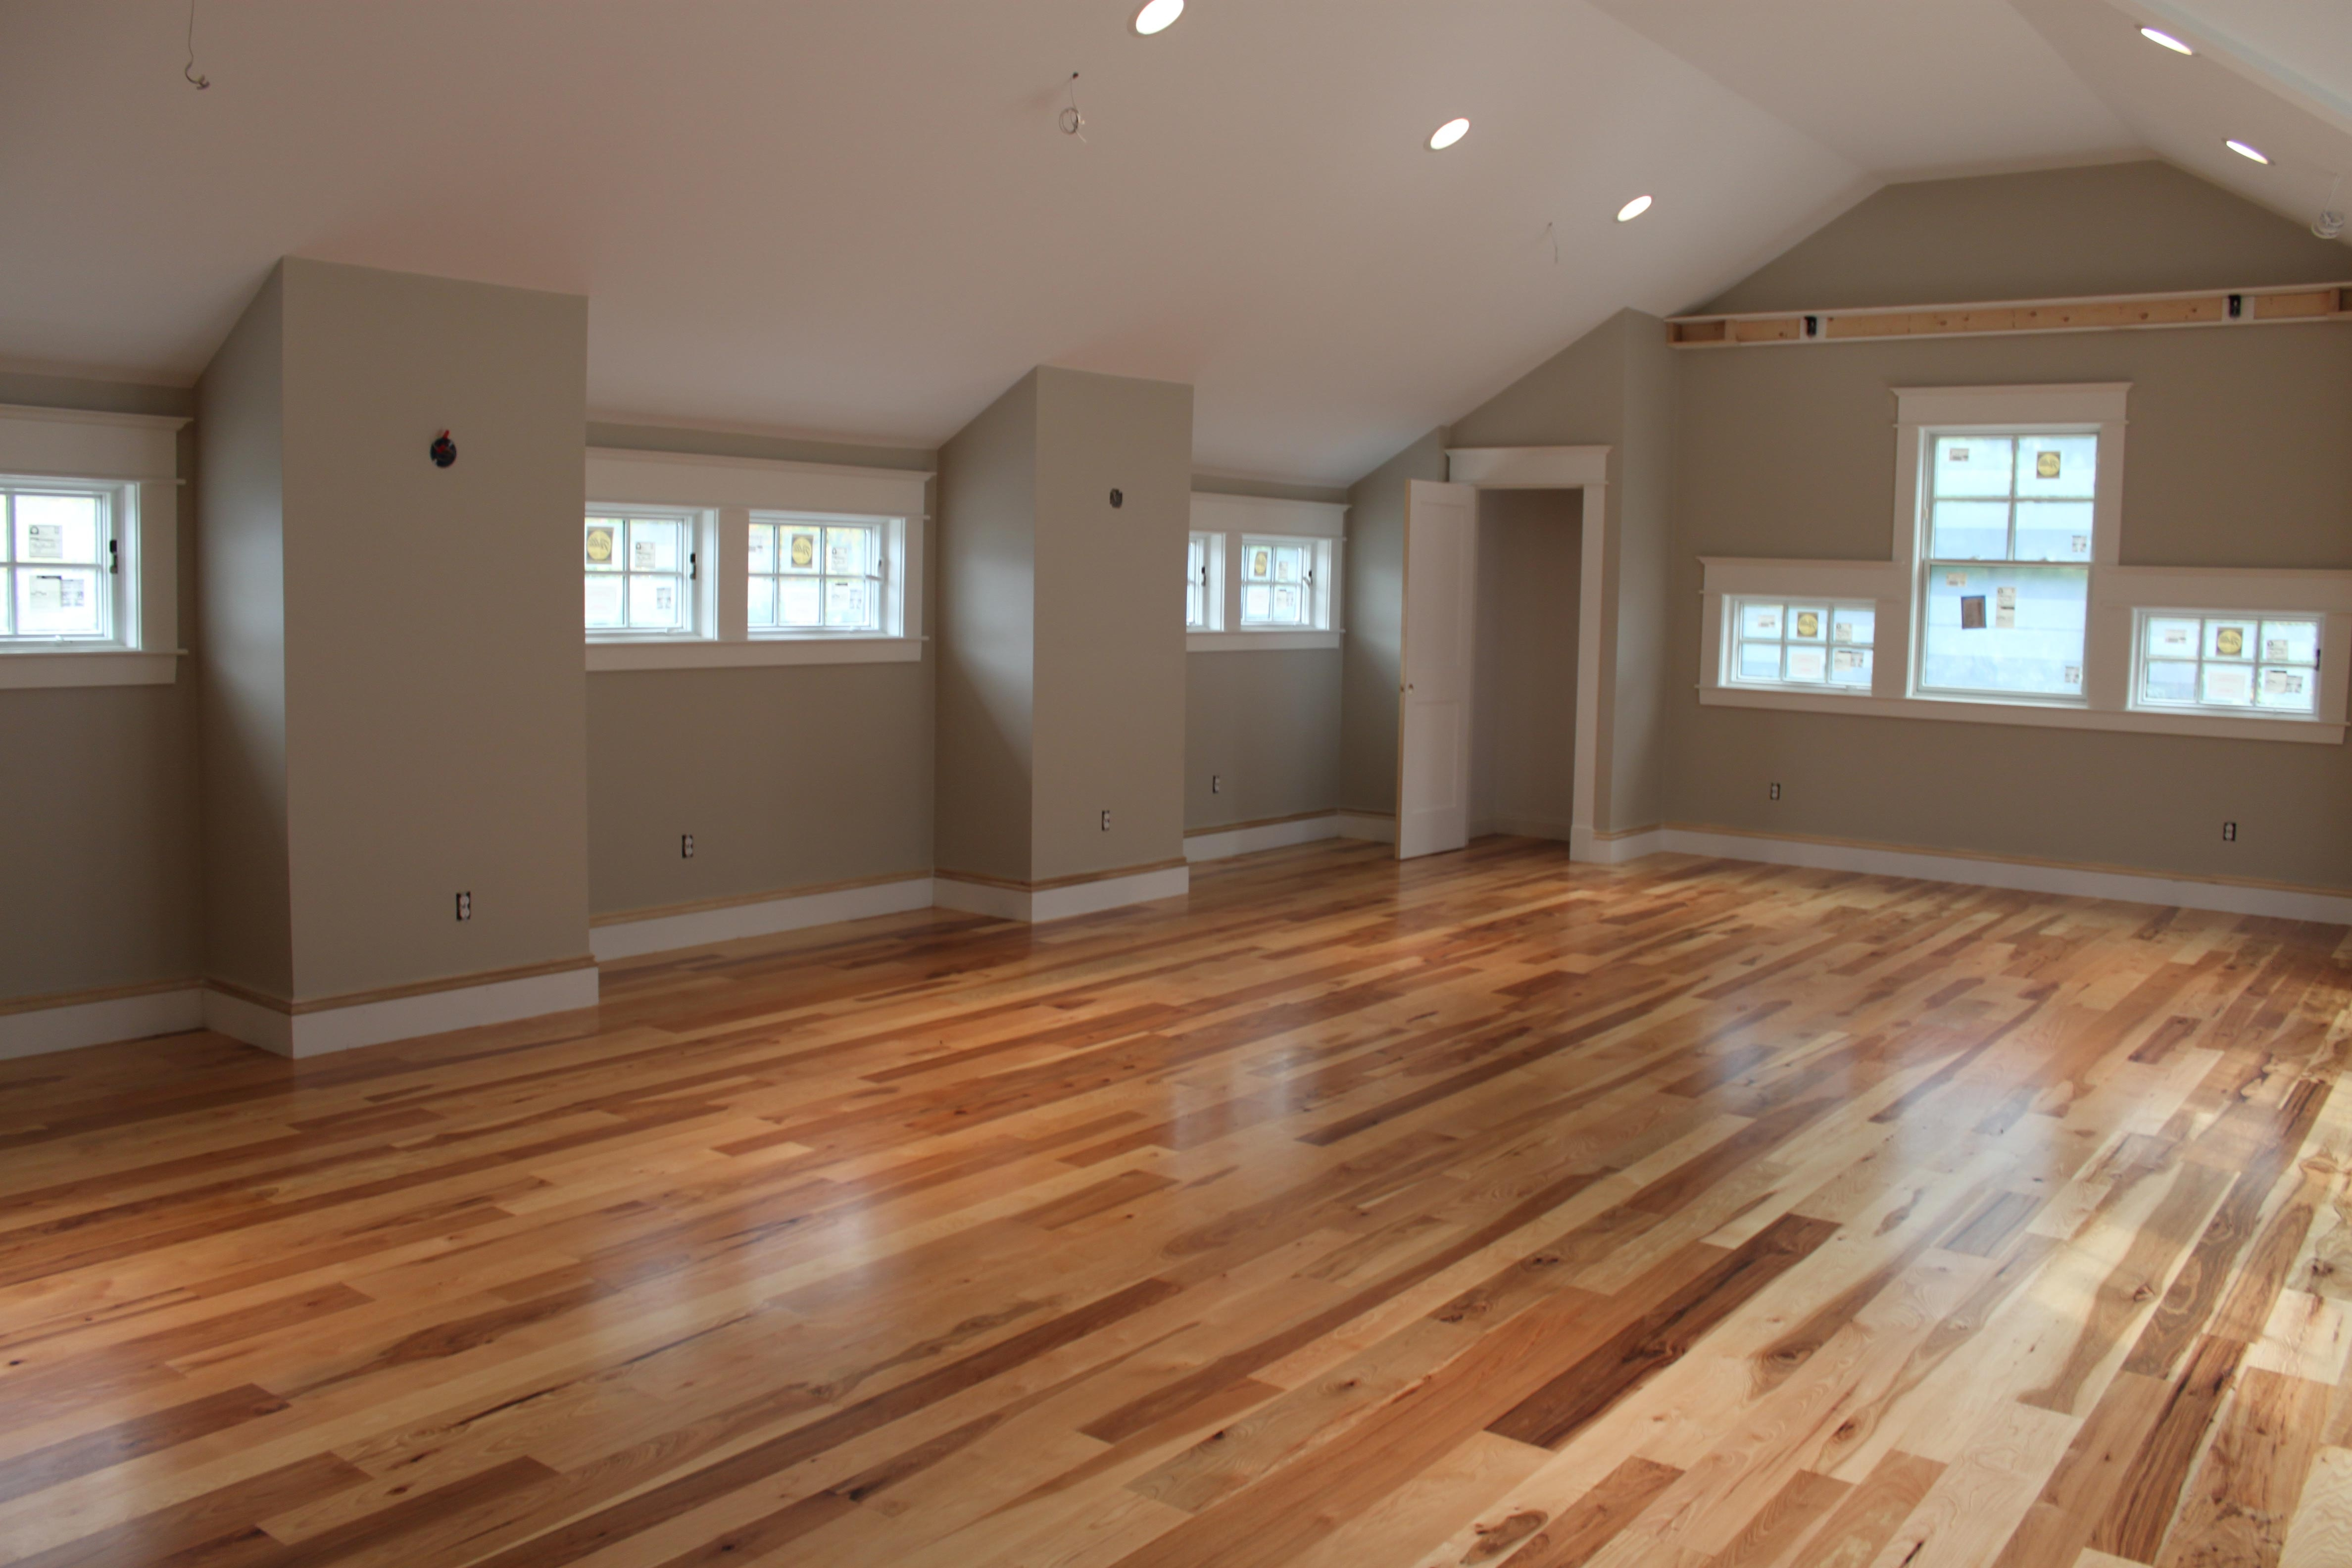 Permalink to Clear Finish For Wood Floors